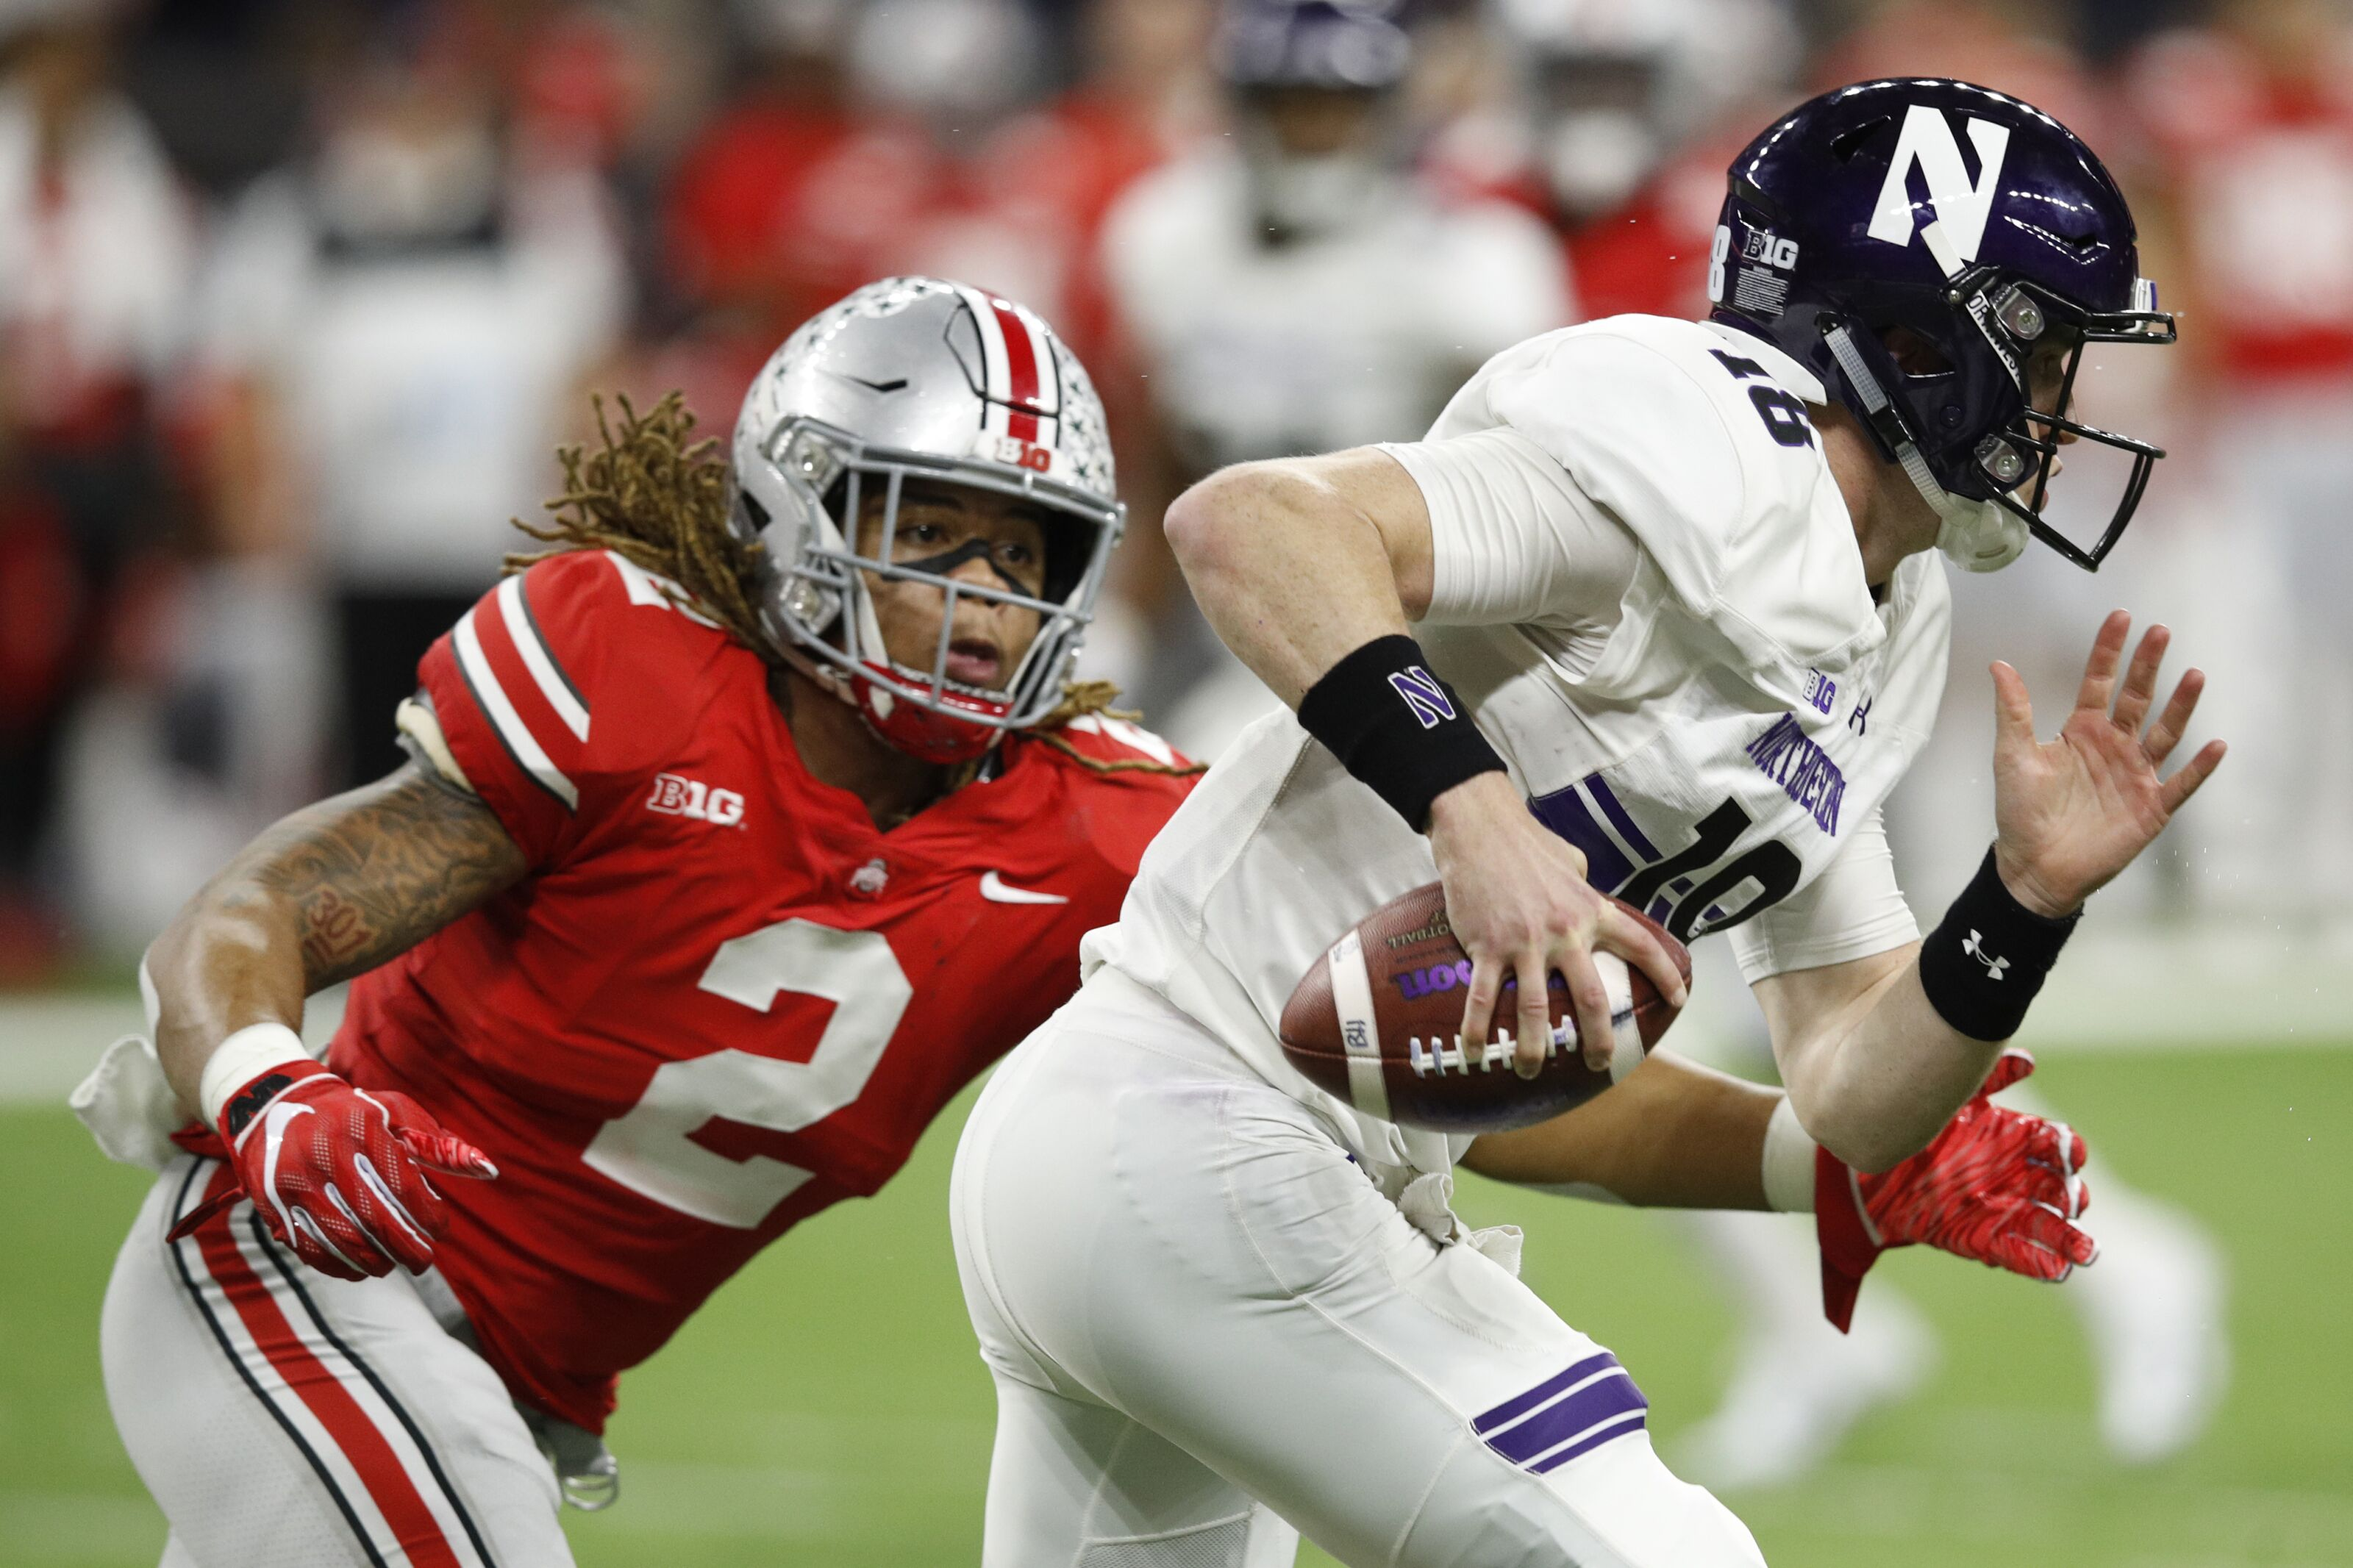 2020 NFL Draft: Ohio State DE Chase Young scouting report